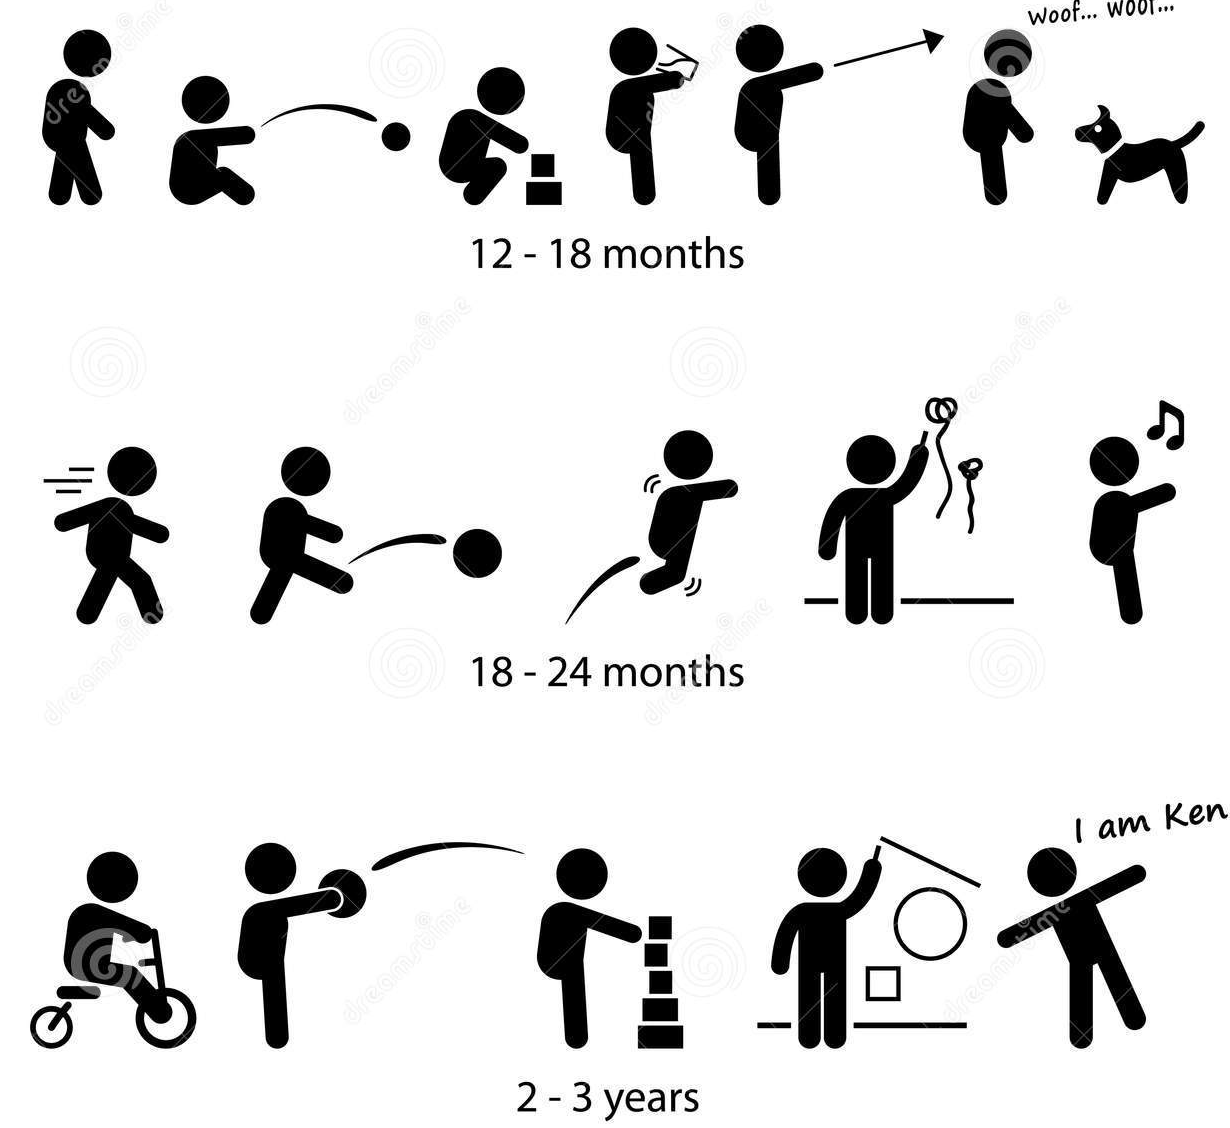 Skill development of toddlers